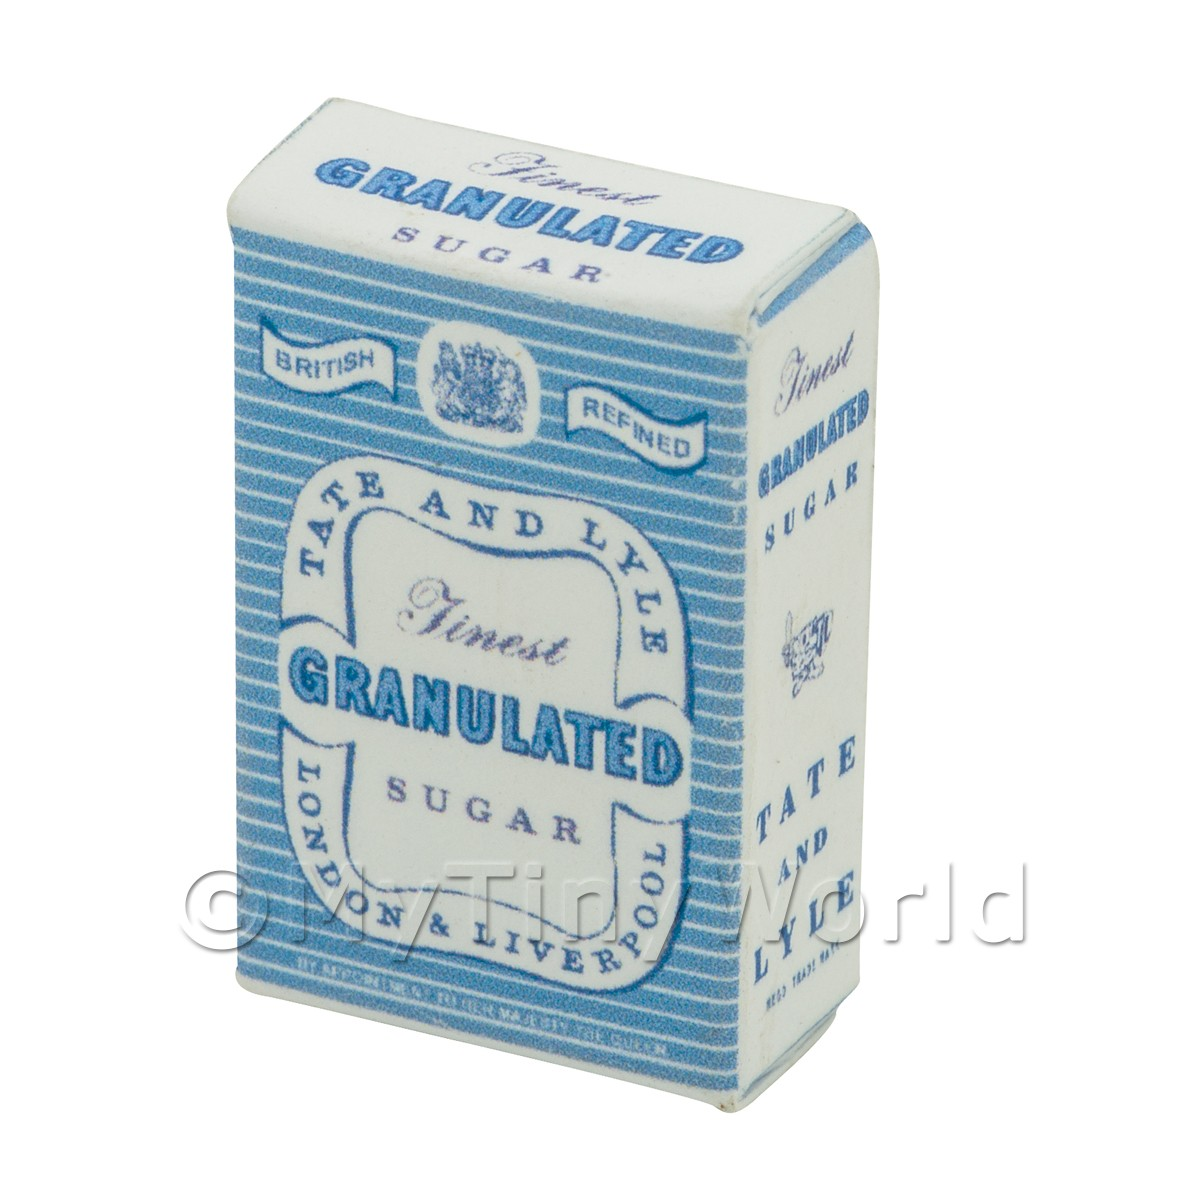 Dolls House Miniature Tate and Lyle Granulated Sugar